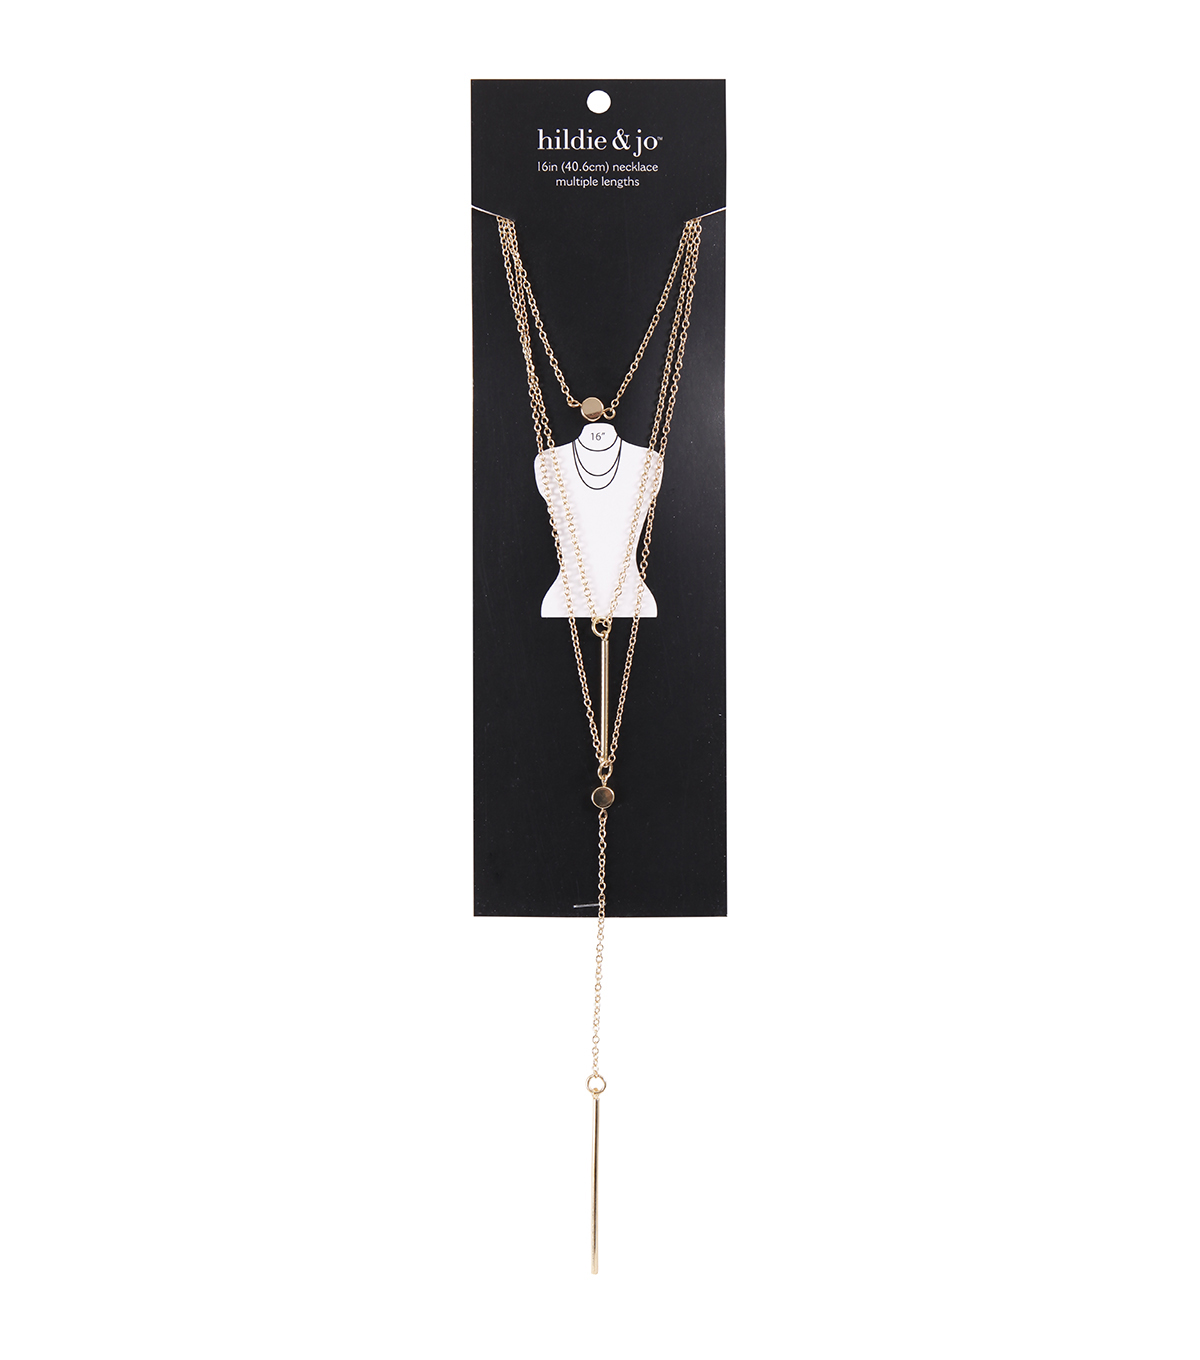 hildie & jo Minimalist Long Style Necklace-Gold